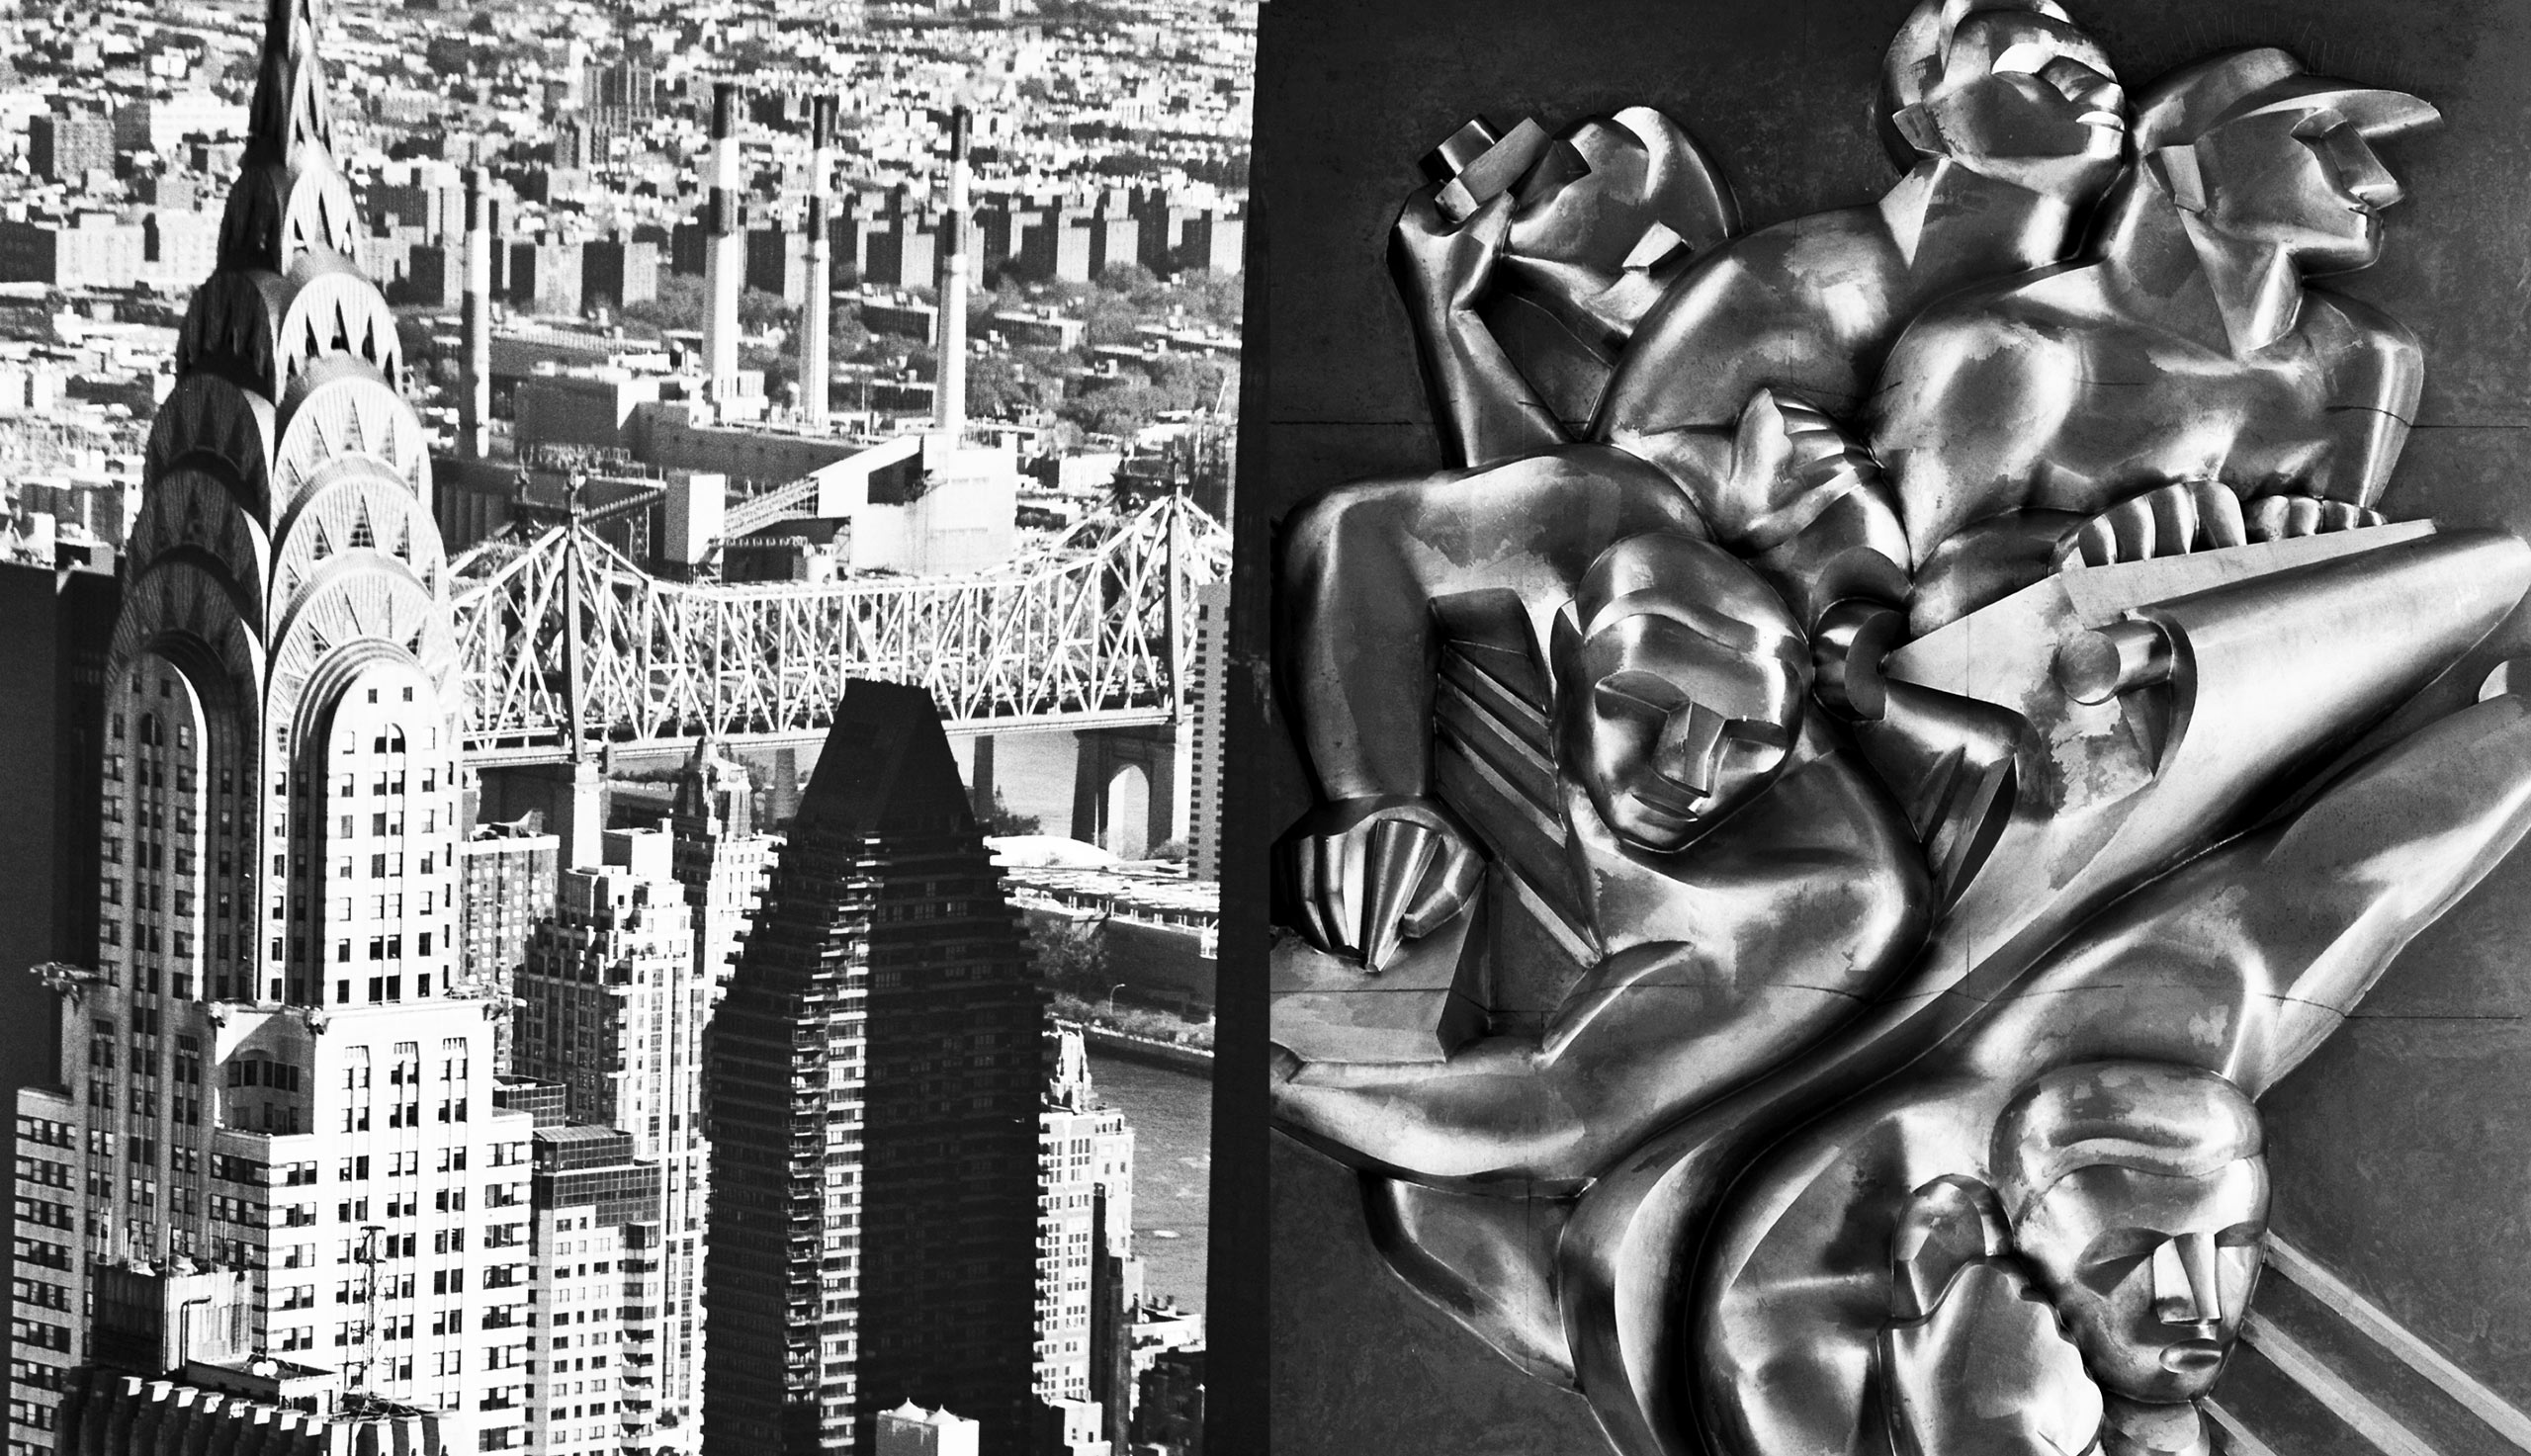 Left: The Chrysler Building. Right: Art Deco reliefs at Rockefeller Center